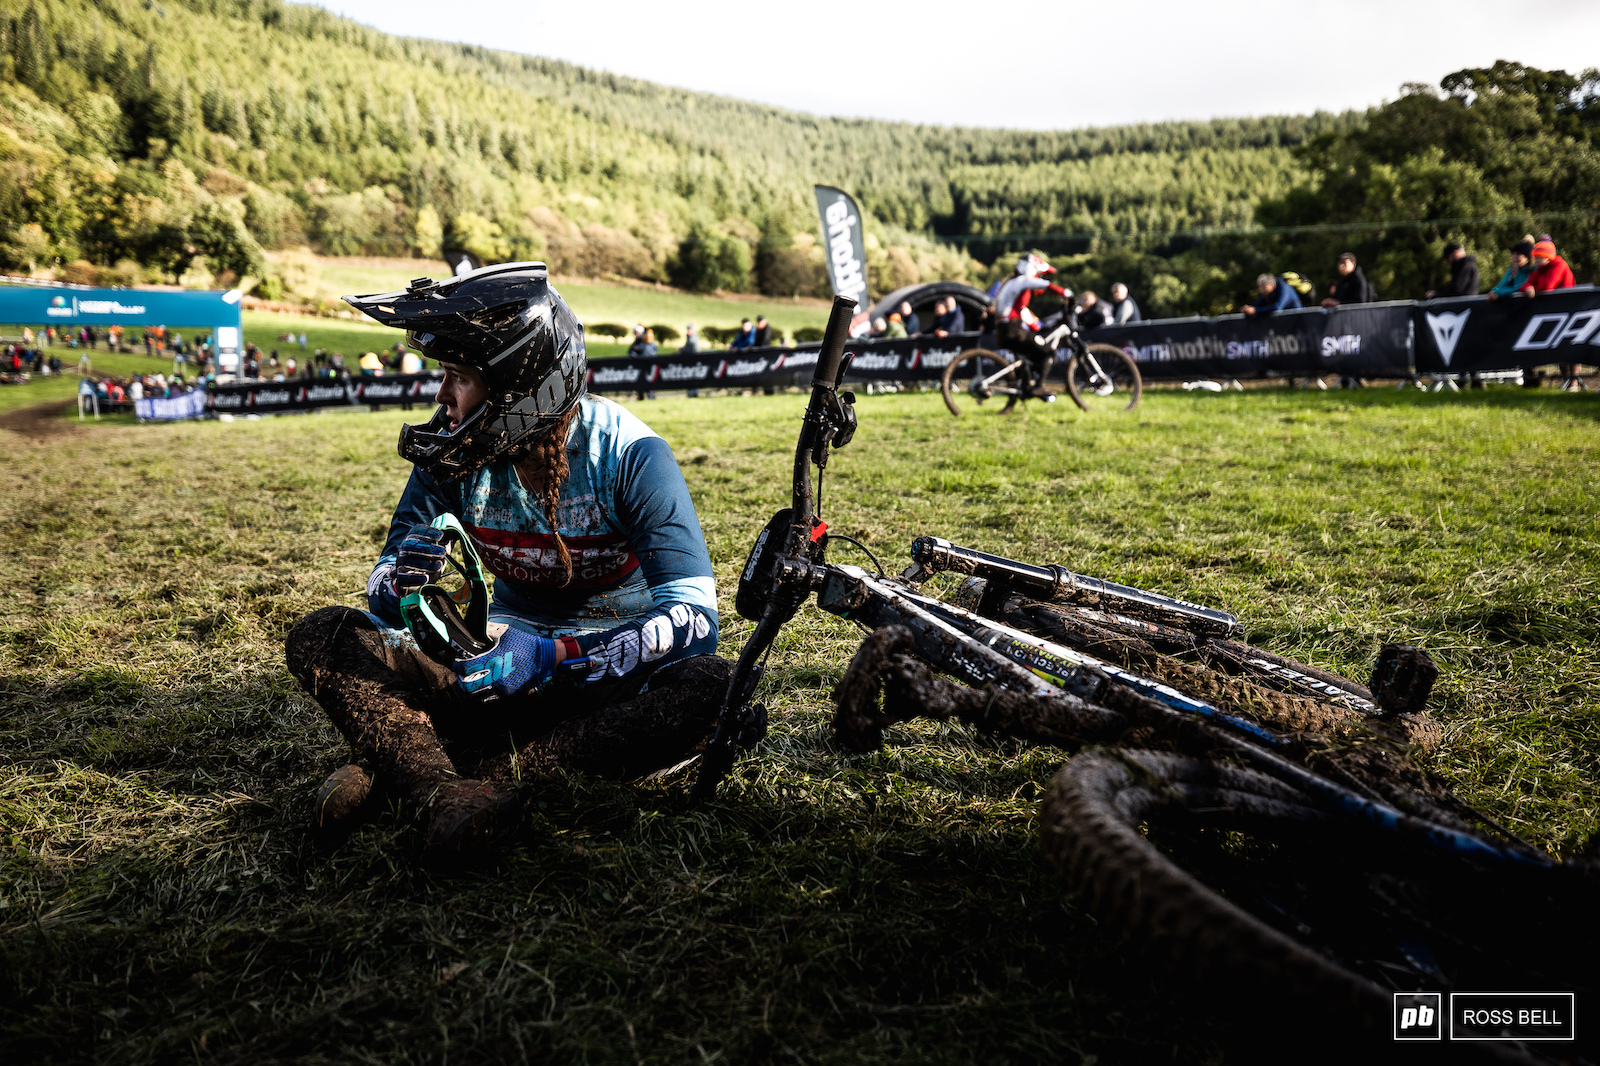 Hattie Harnden waits nervously for the finals riders having led into the last stage.